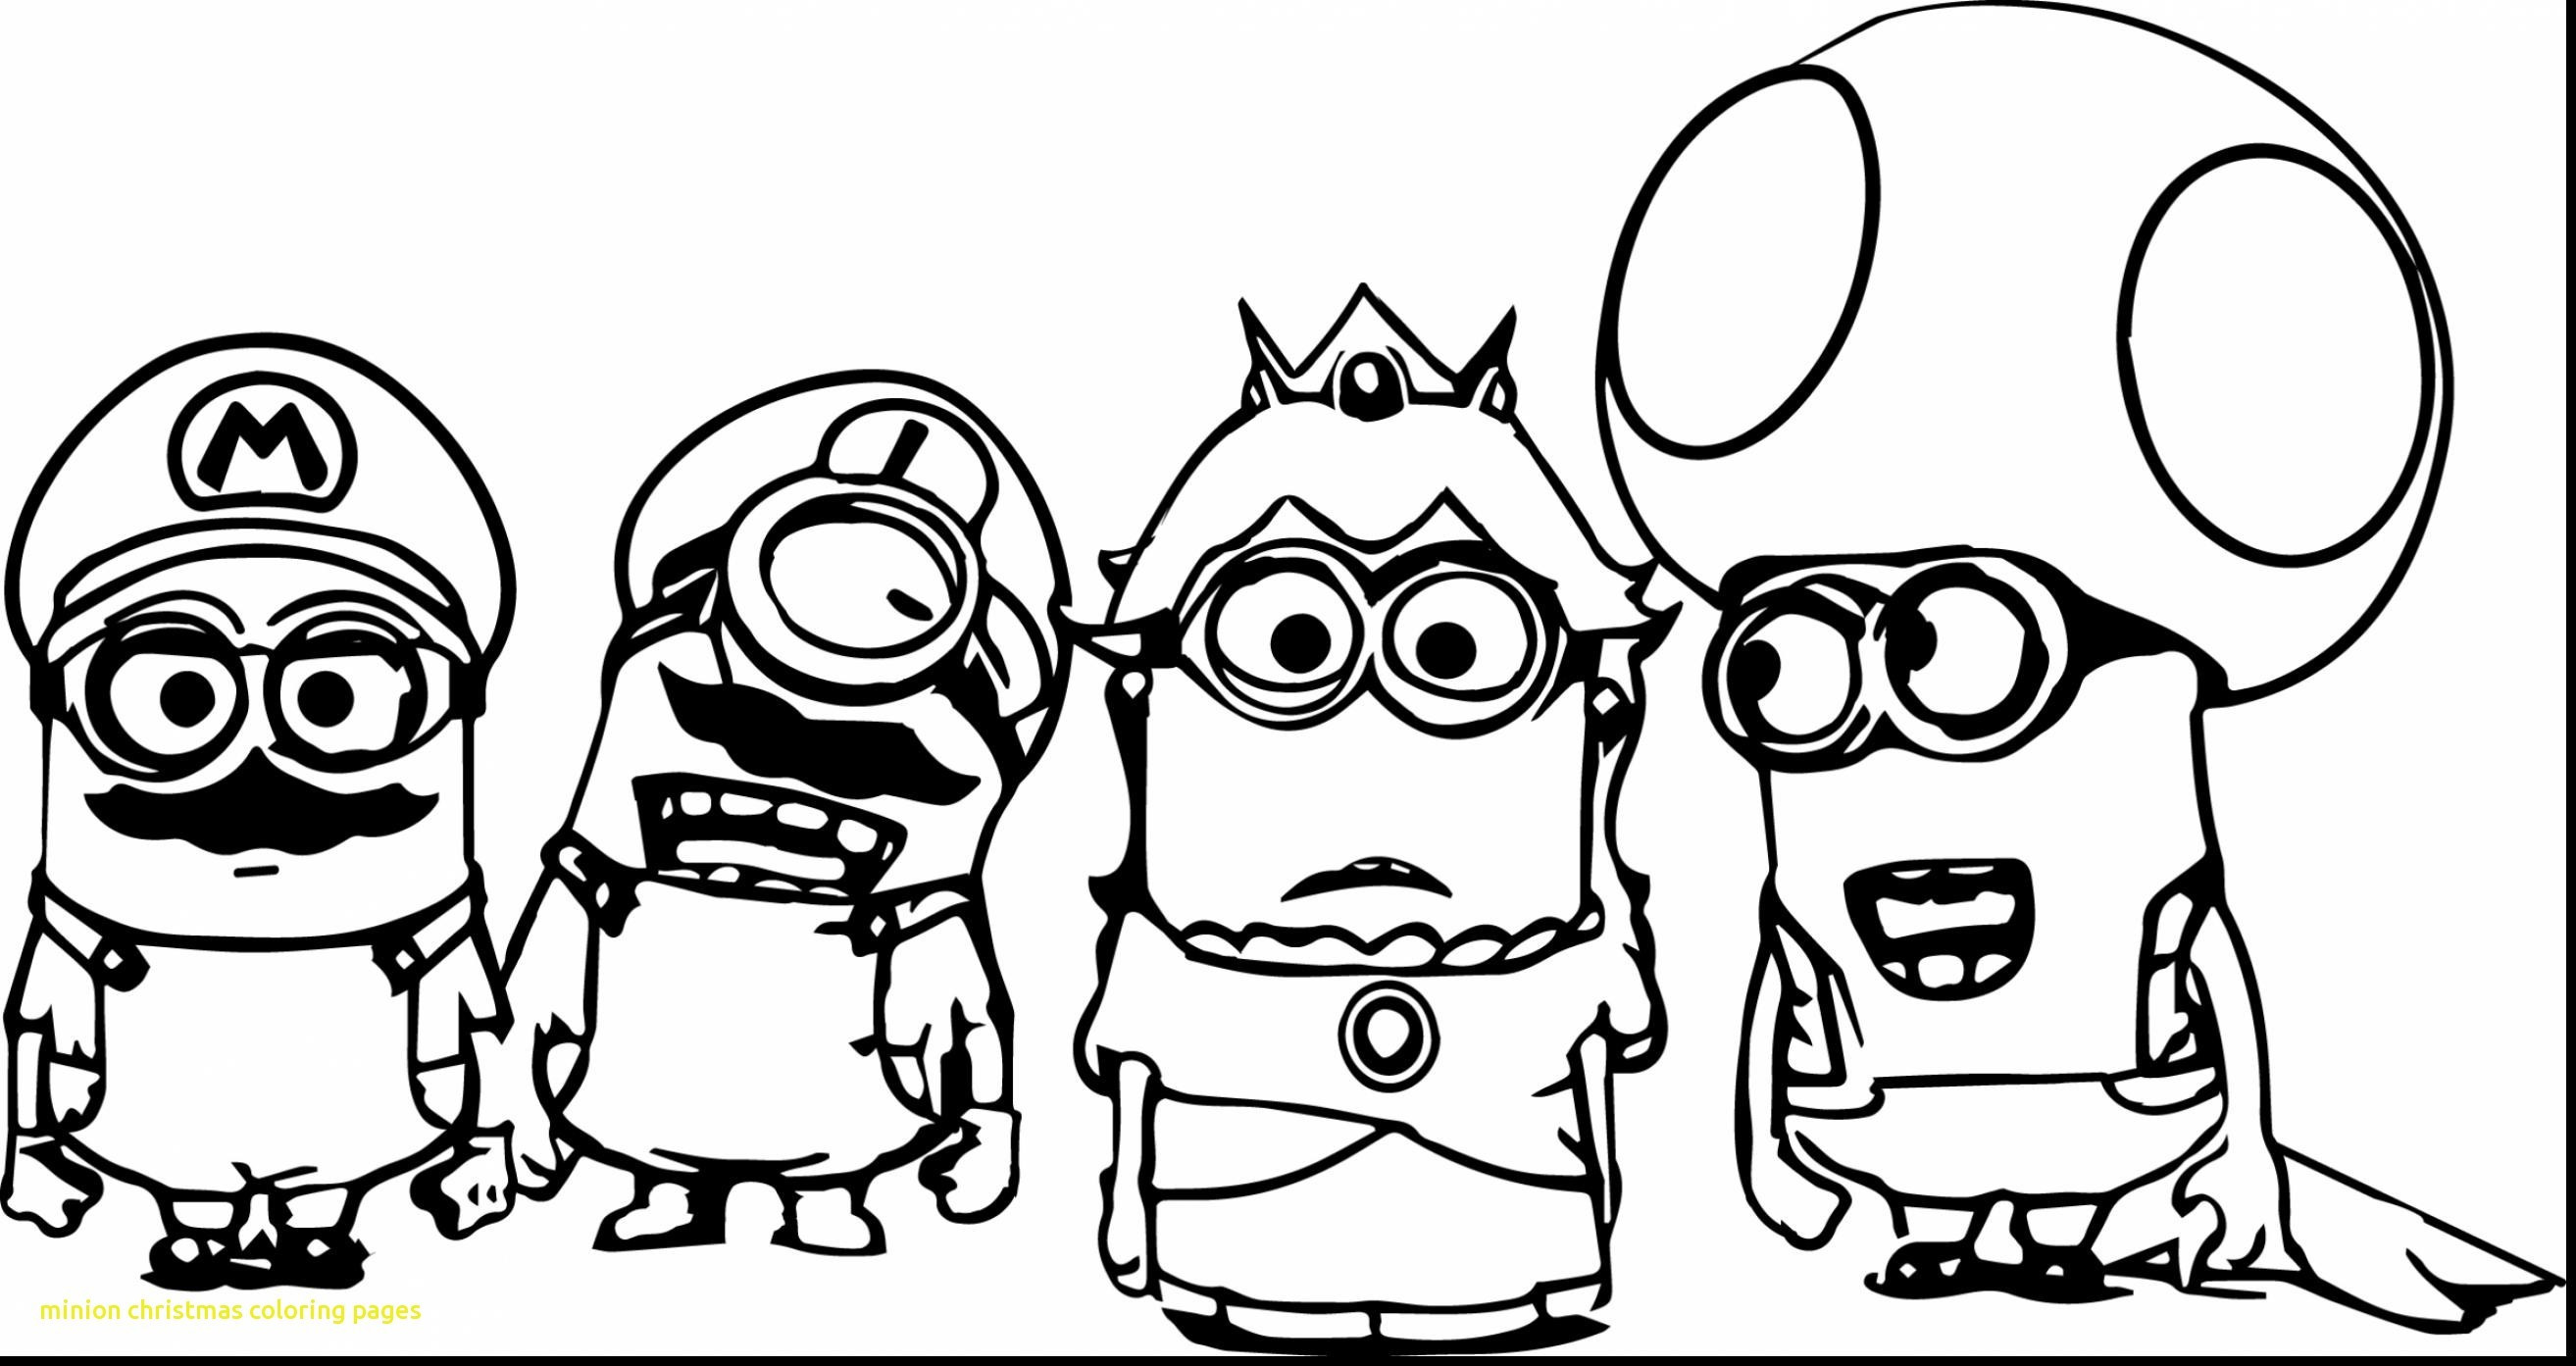 Christmas Coloring Pages Minions With Collection Of Halloween Download Them And